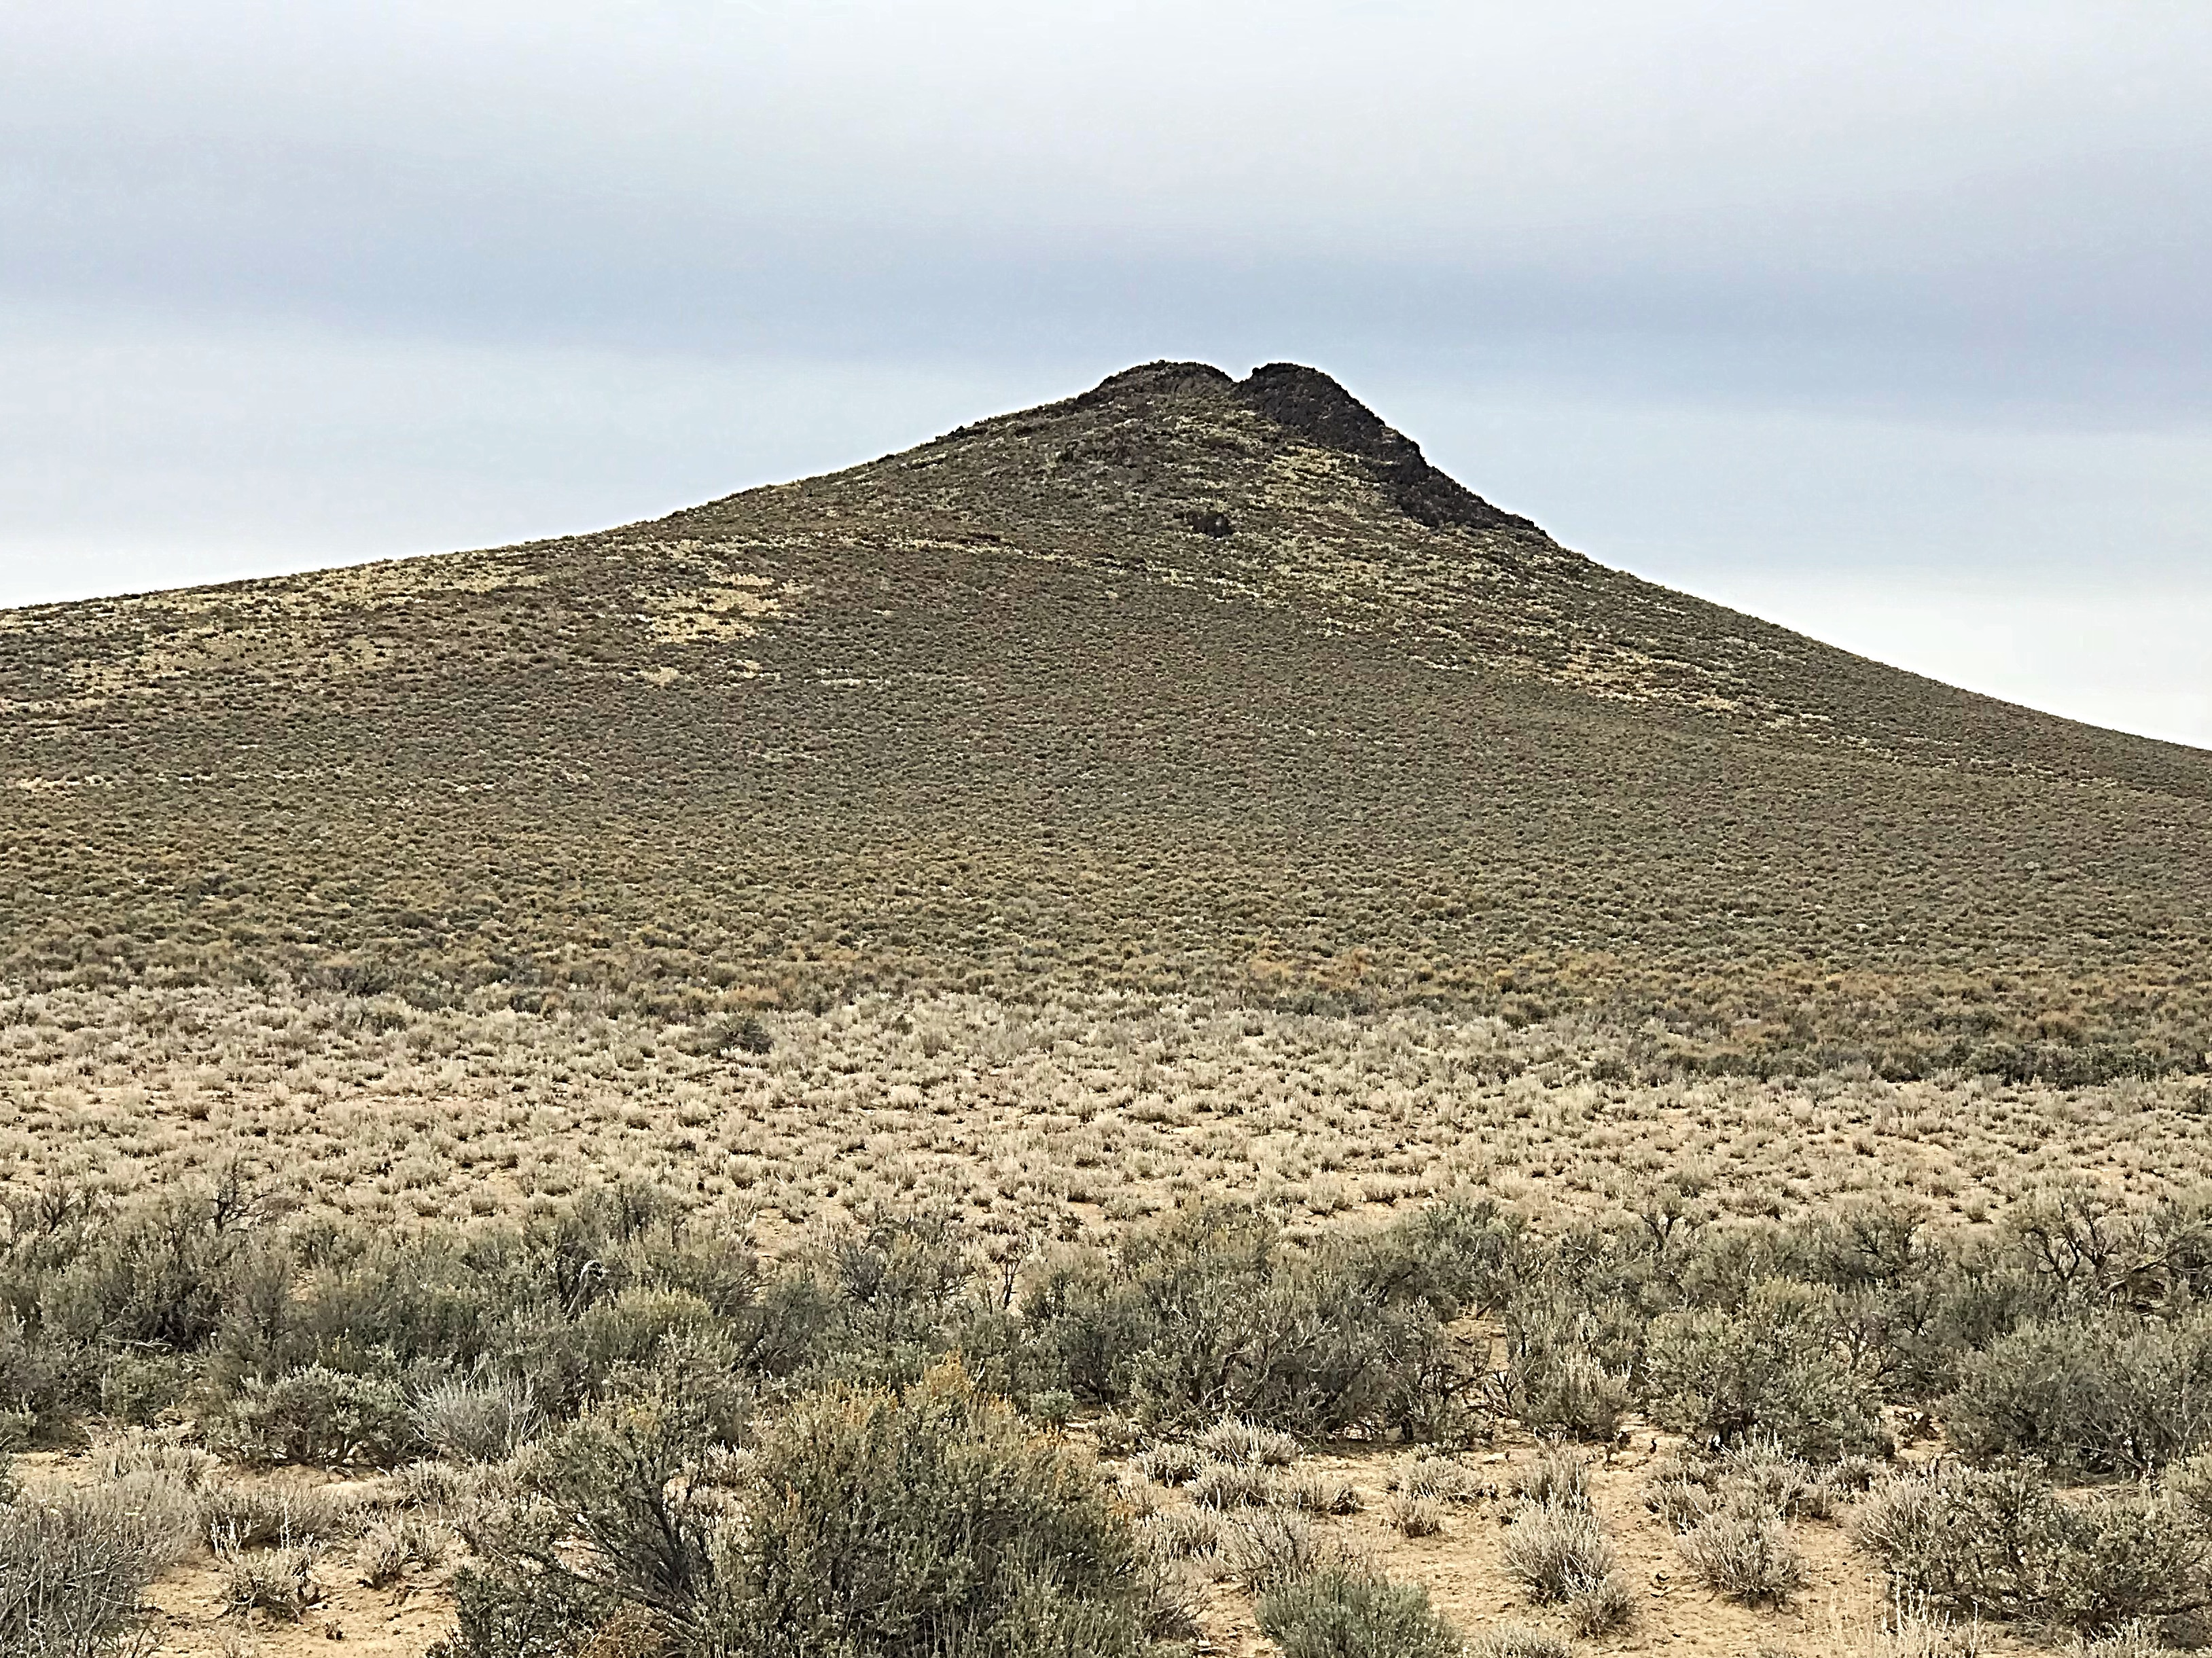 Peak 5565 resembles a volcanic cone but is simply a remnant of a sedimentary uplift.